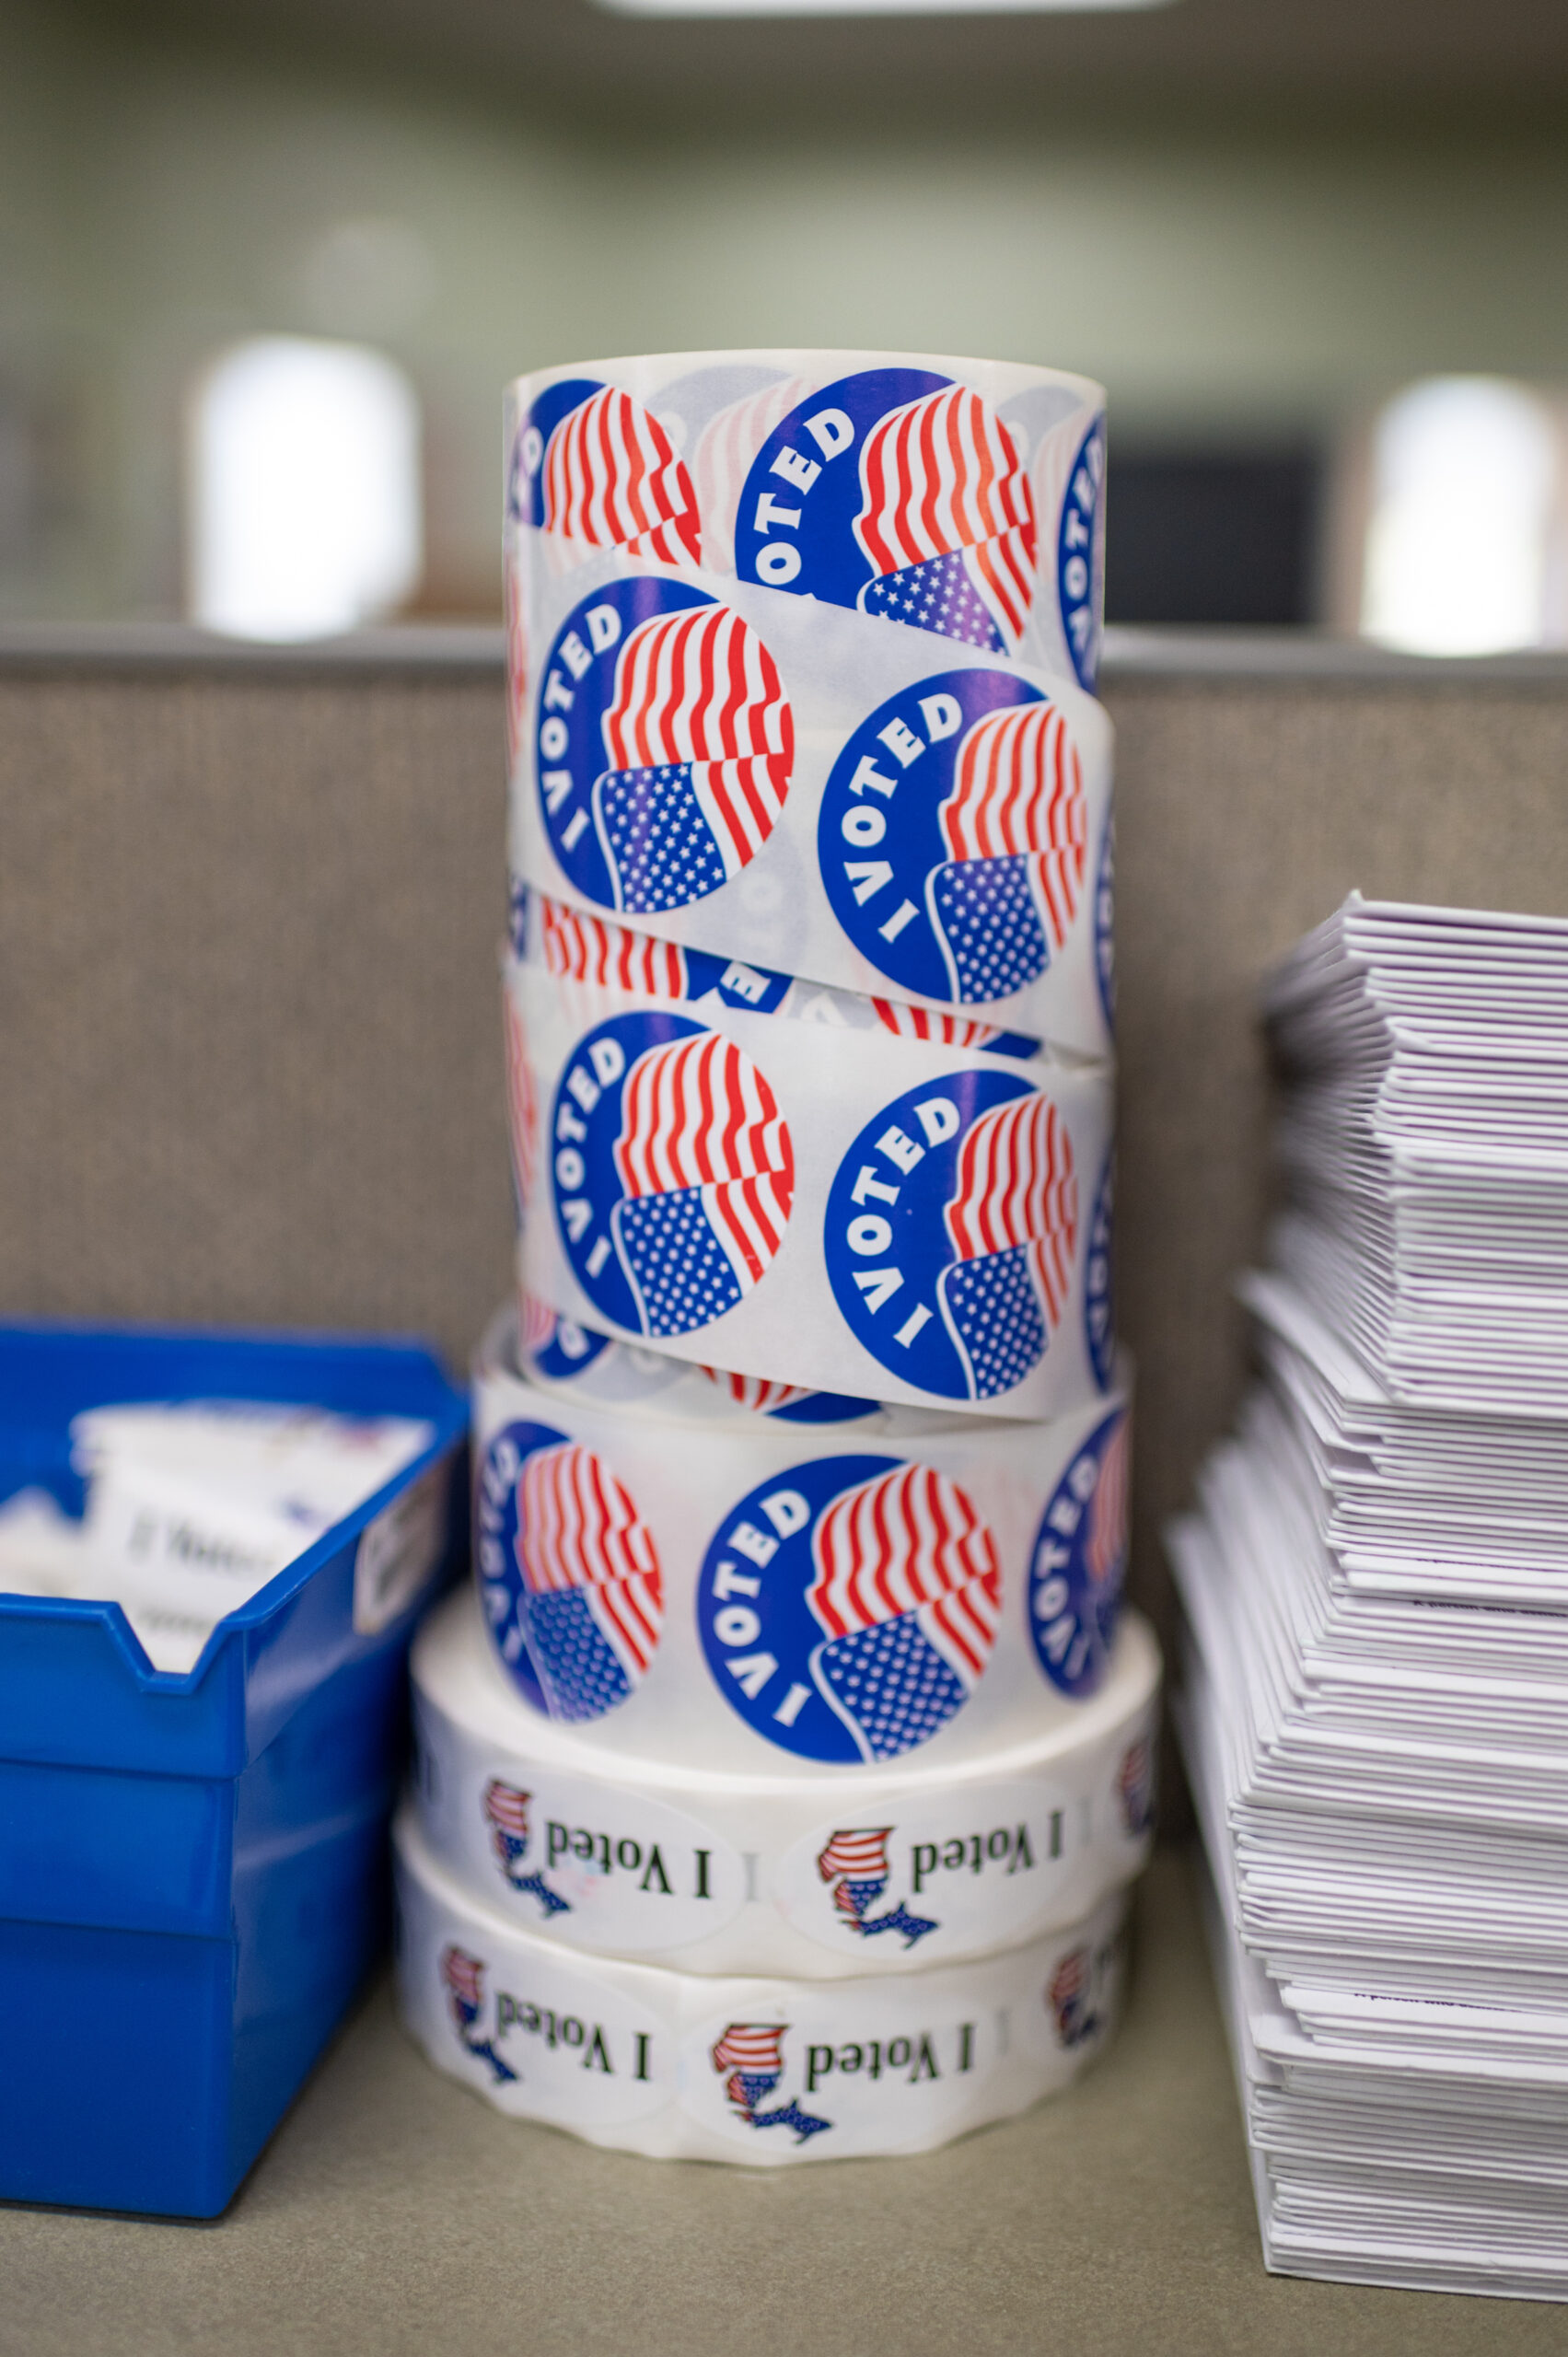 Roll of 'I Voted' stickers at the Ferndale's clerk office. Image credit: Eric Bronson, Michigan Photography